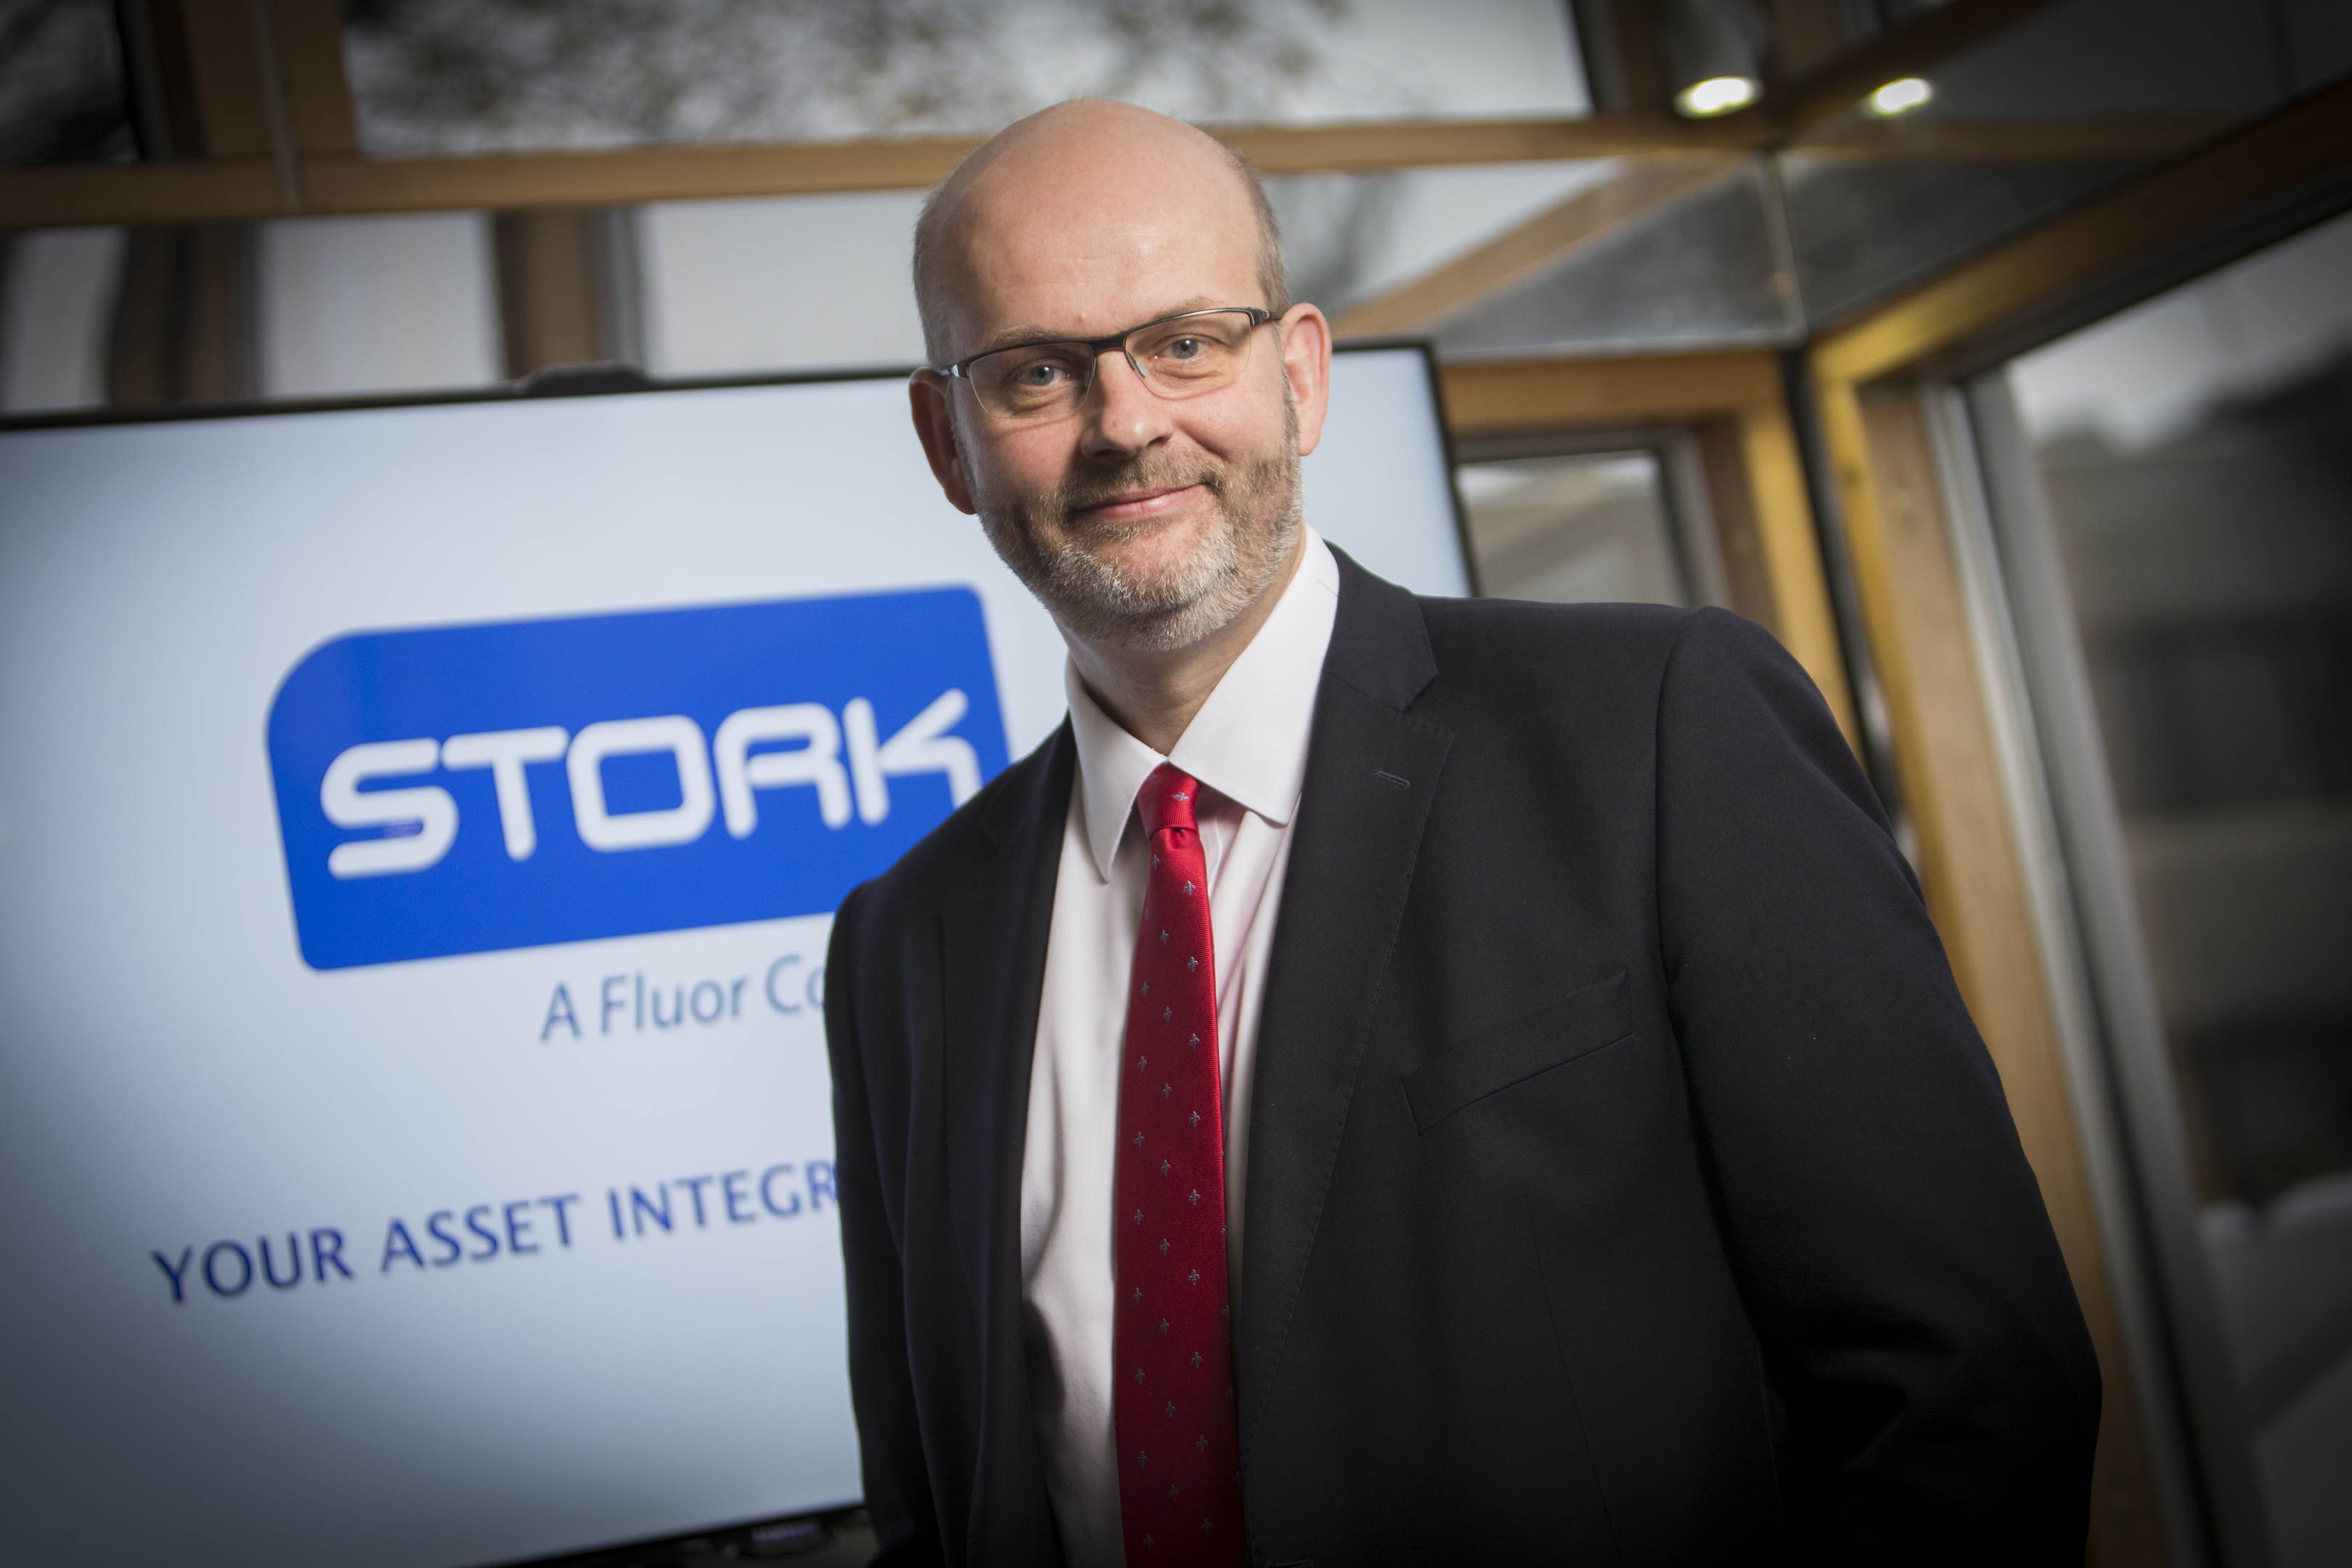 Key appointment strengthens Stork's asset integrity focus